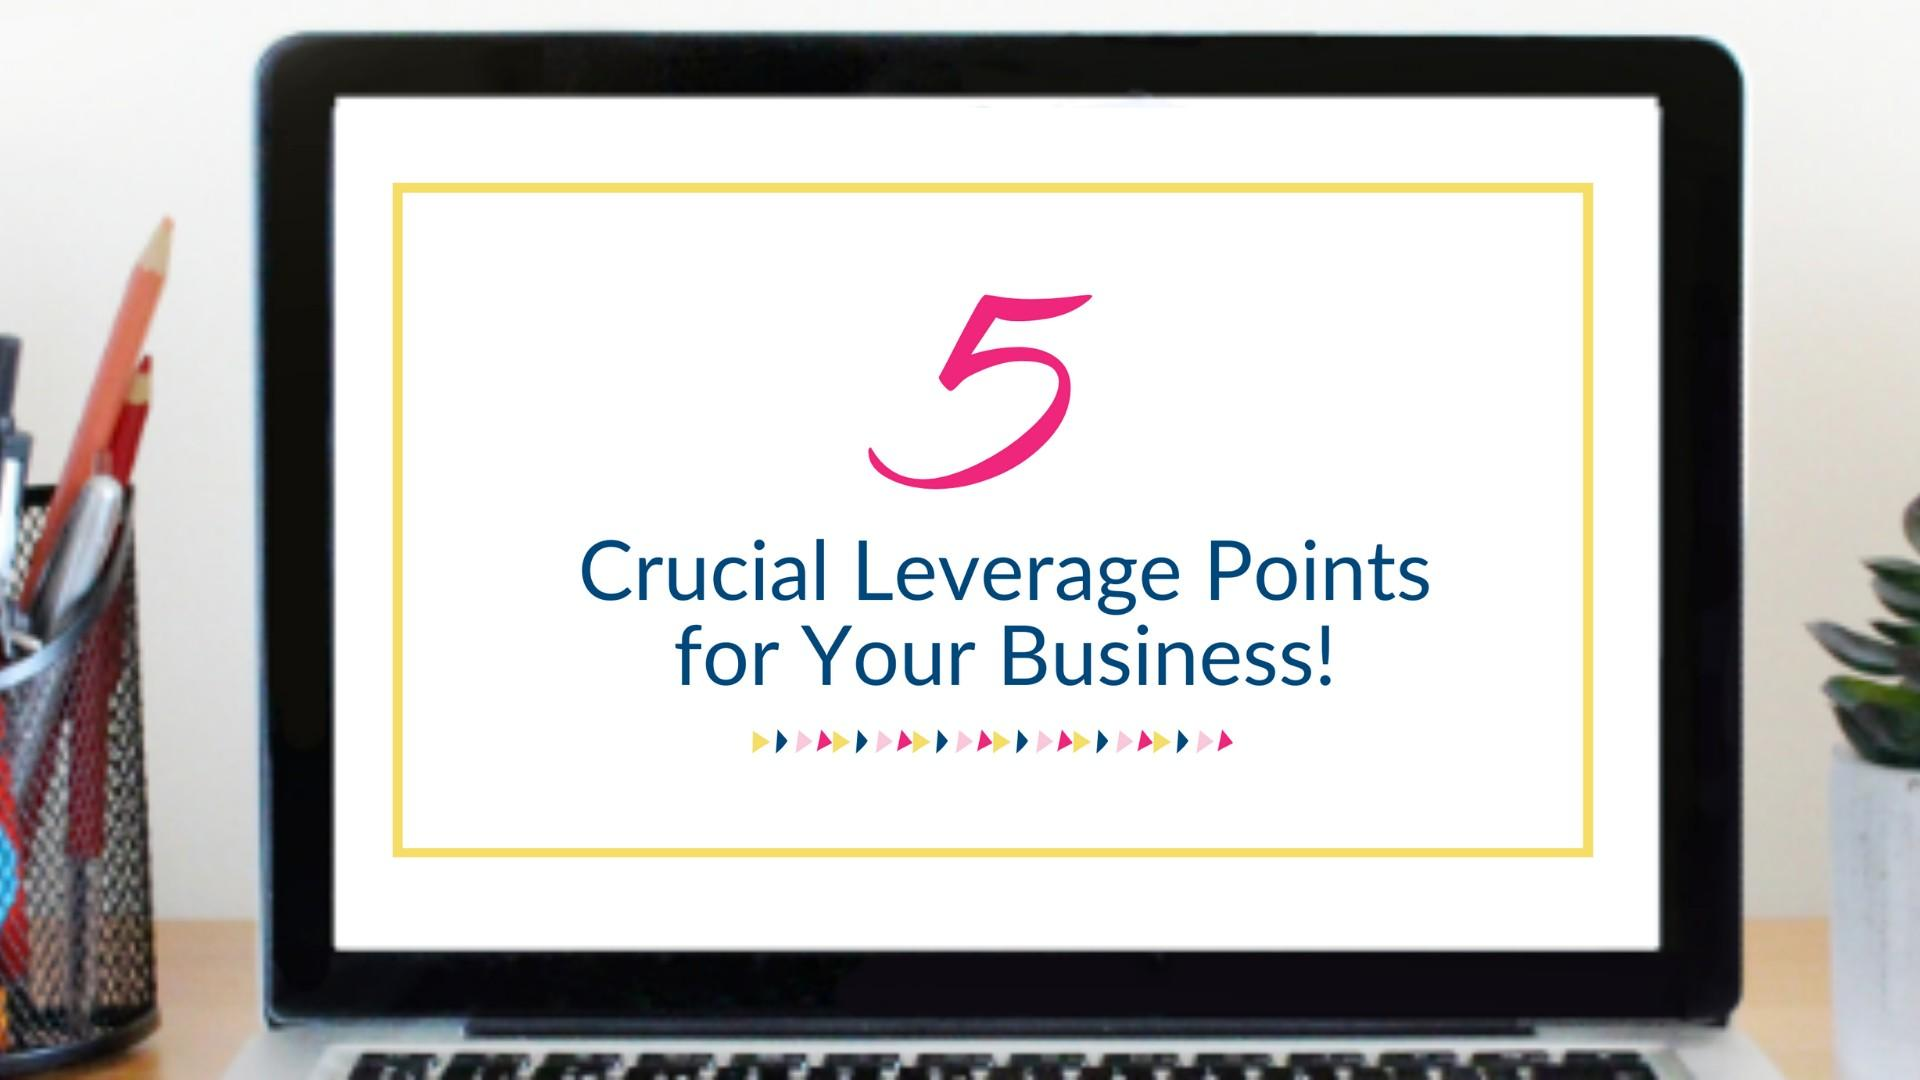 5 Crucial leverage points for your business